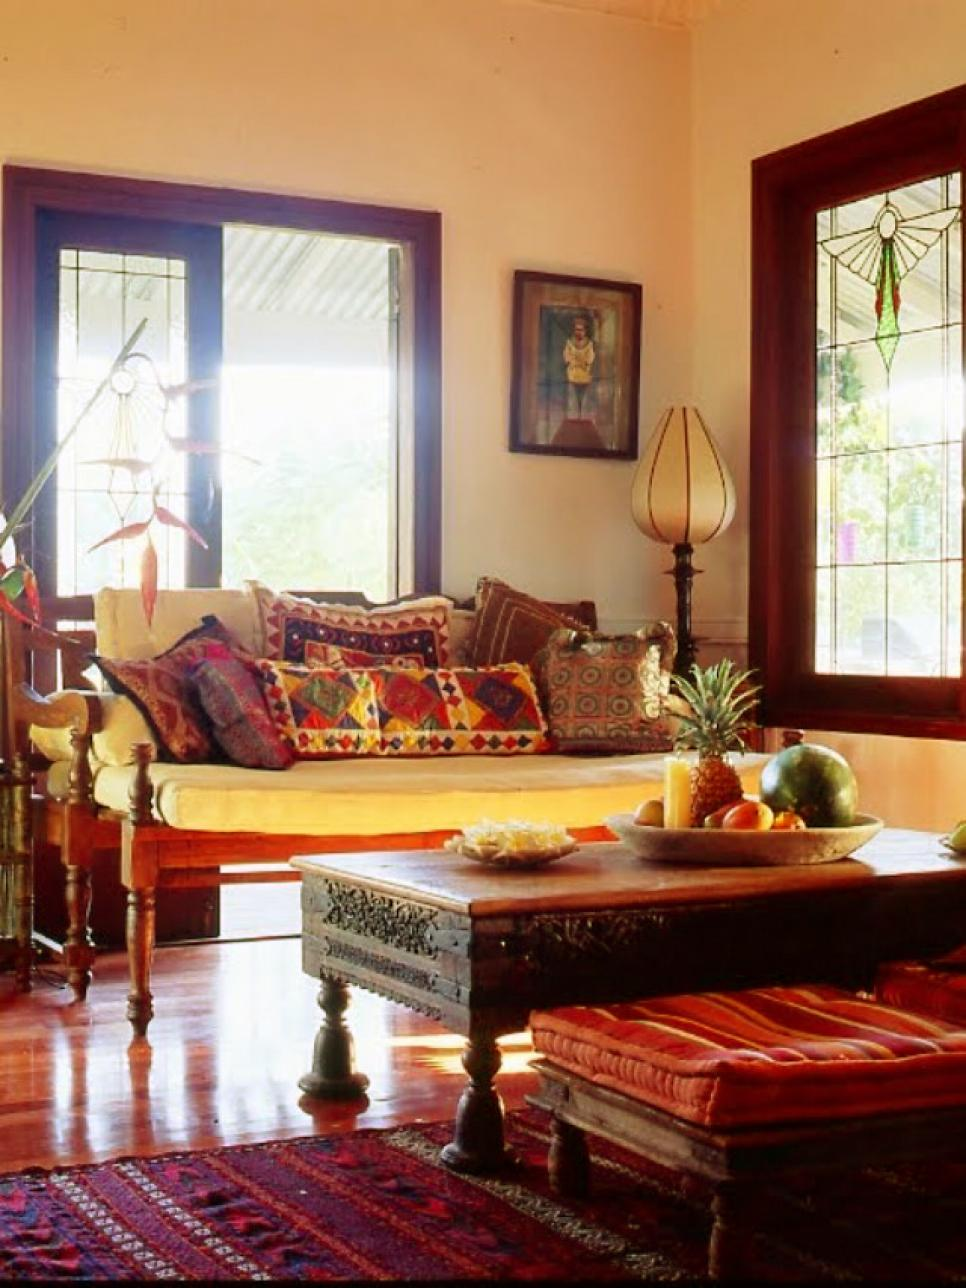 12 spaces inspiredindia | hgtv